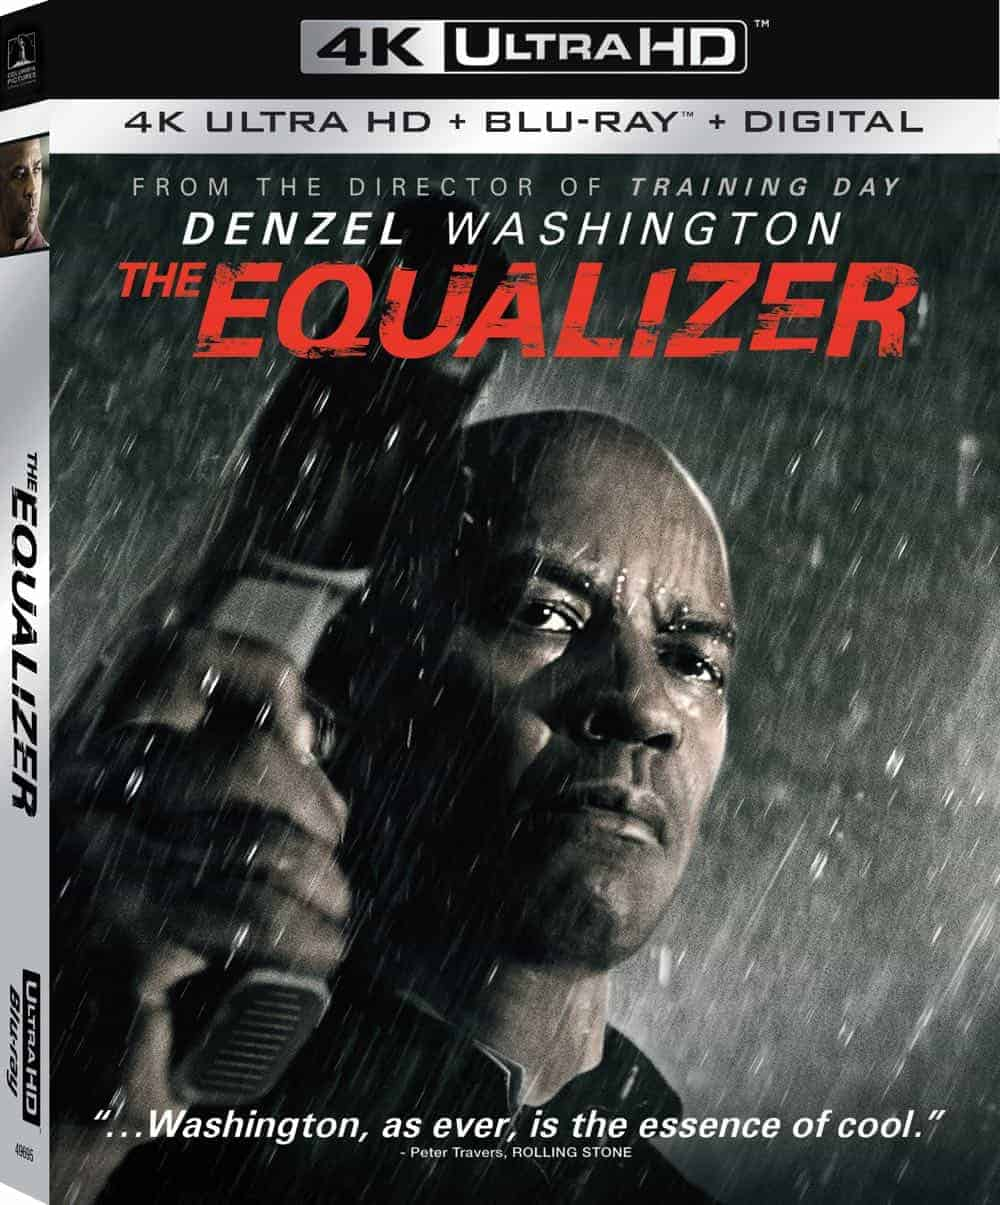 The-Equalizer-4K-Cover